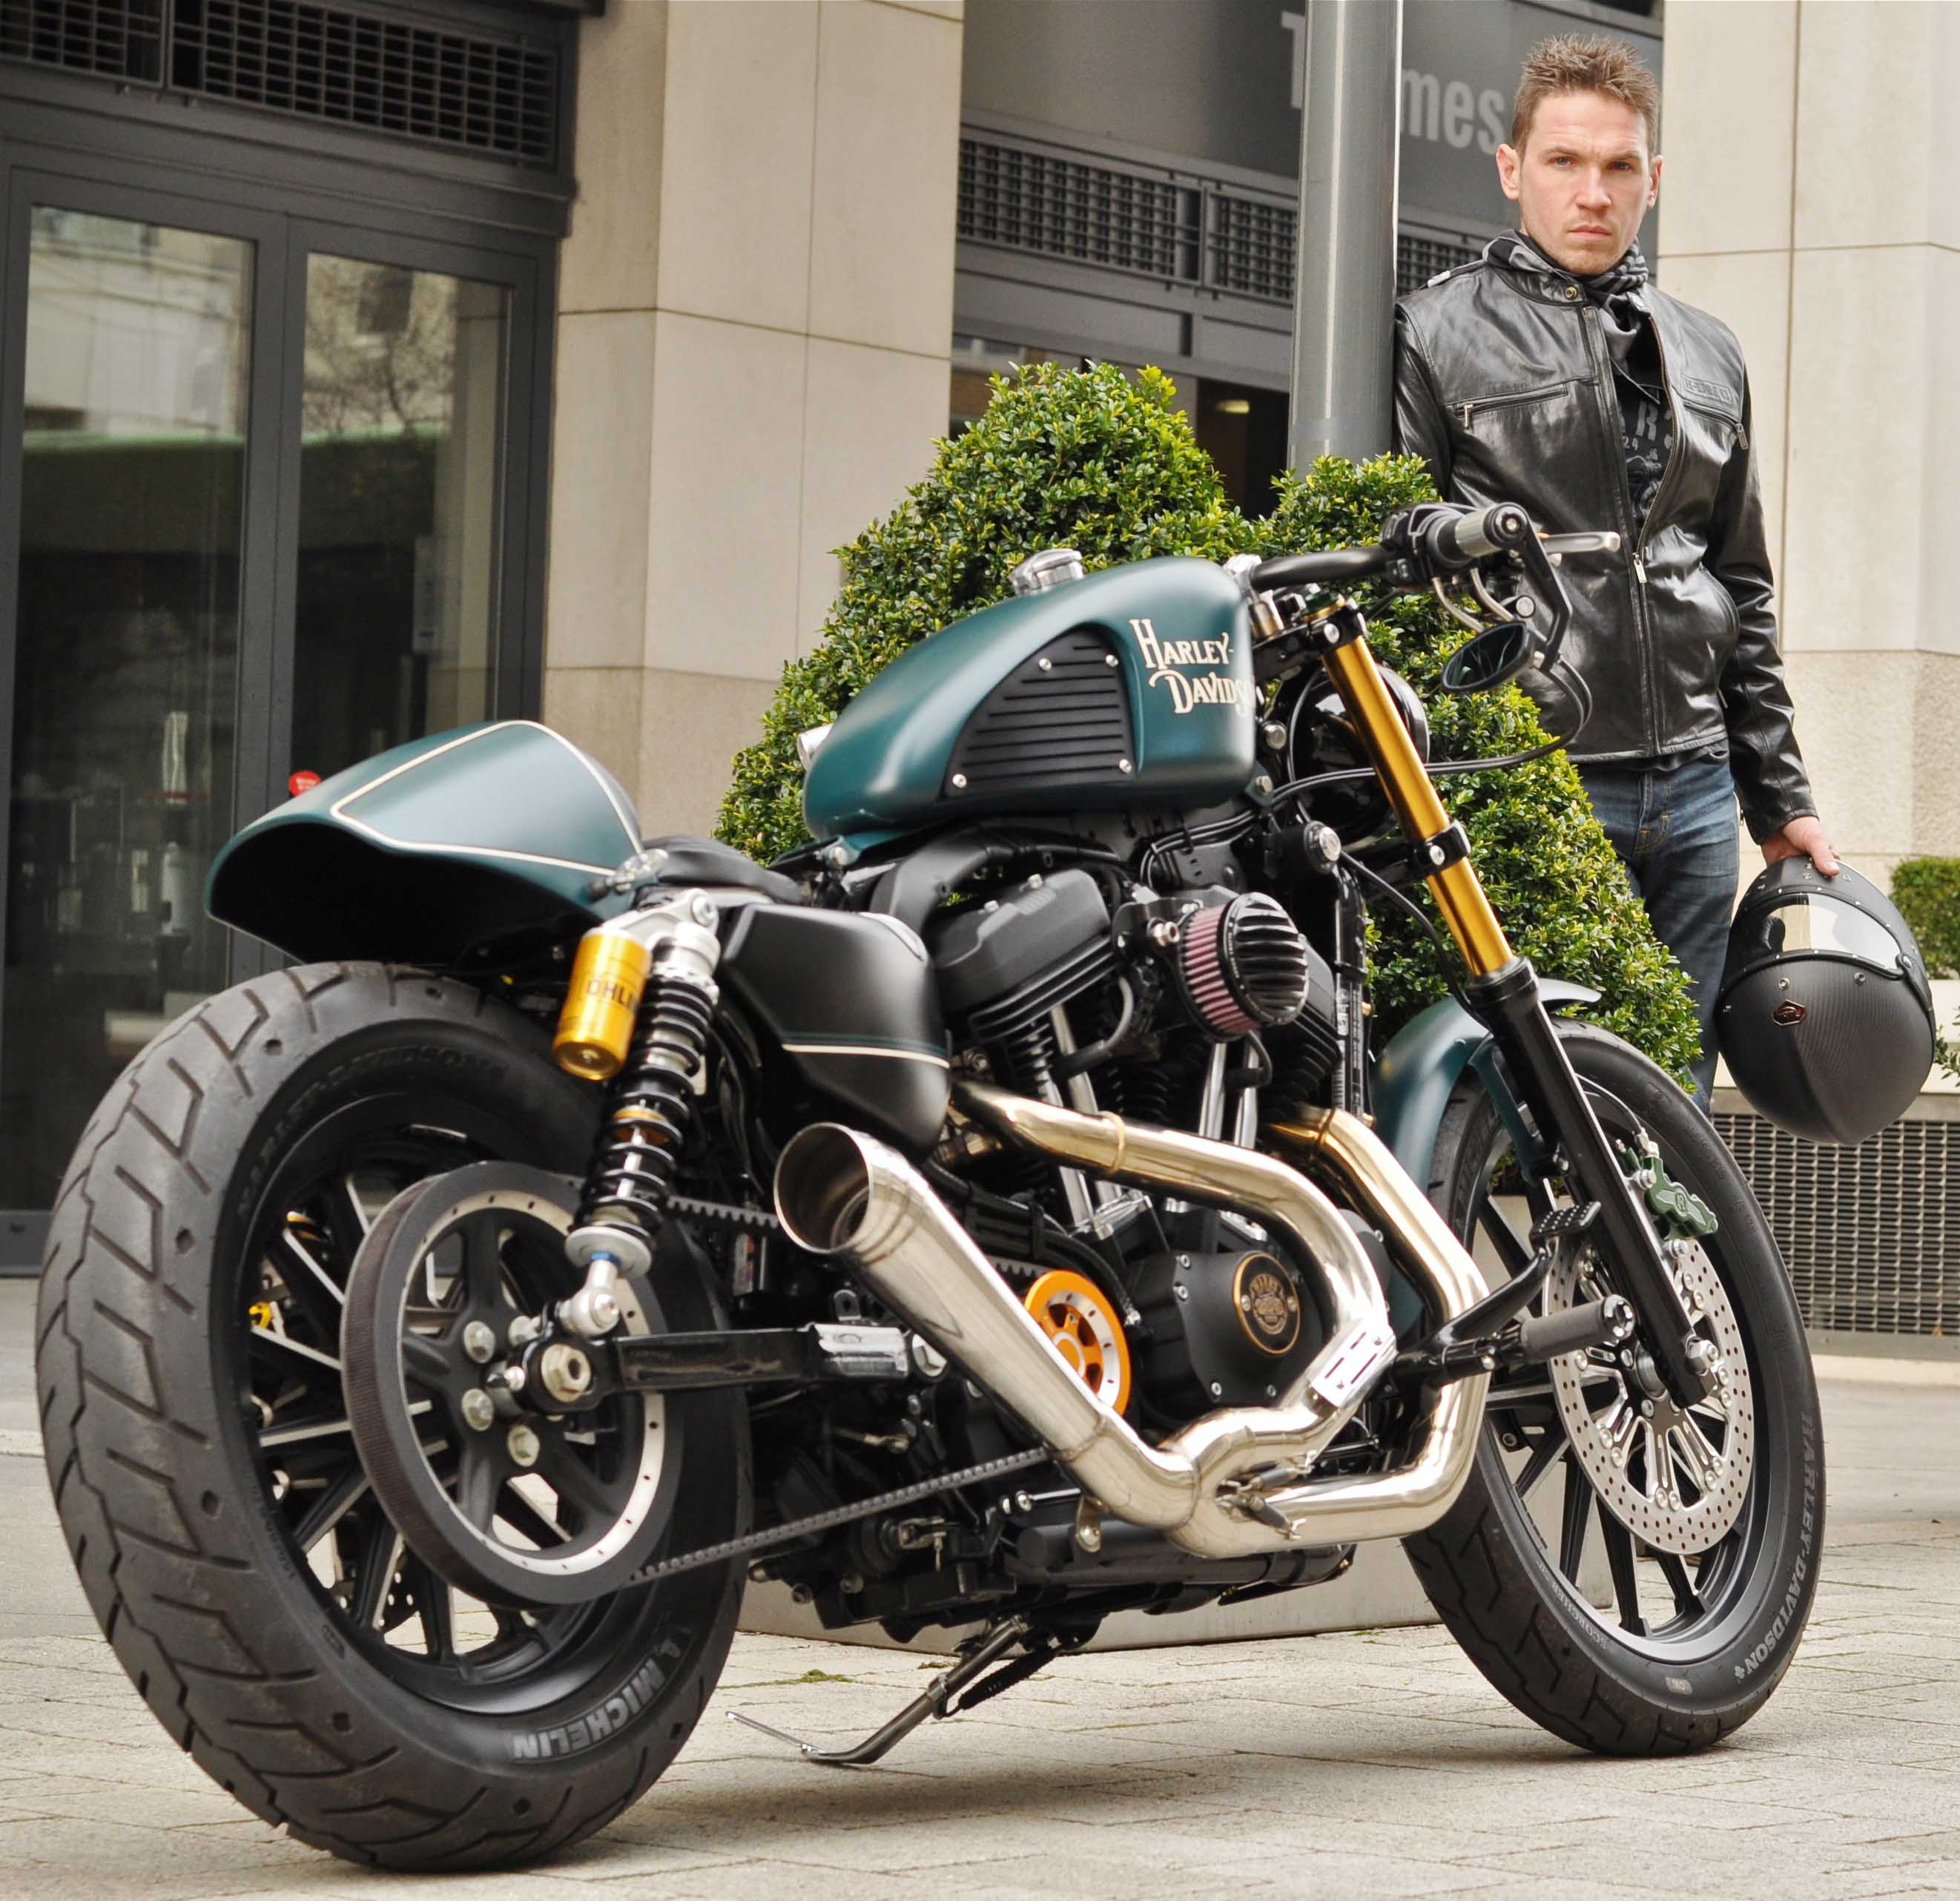 Harley Davidson: Charlie Stockwell Of Warr's